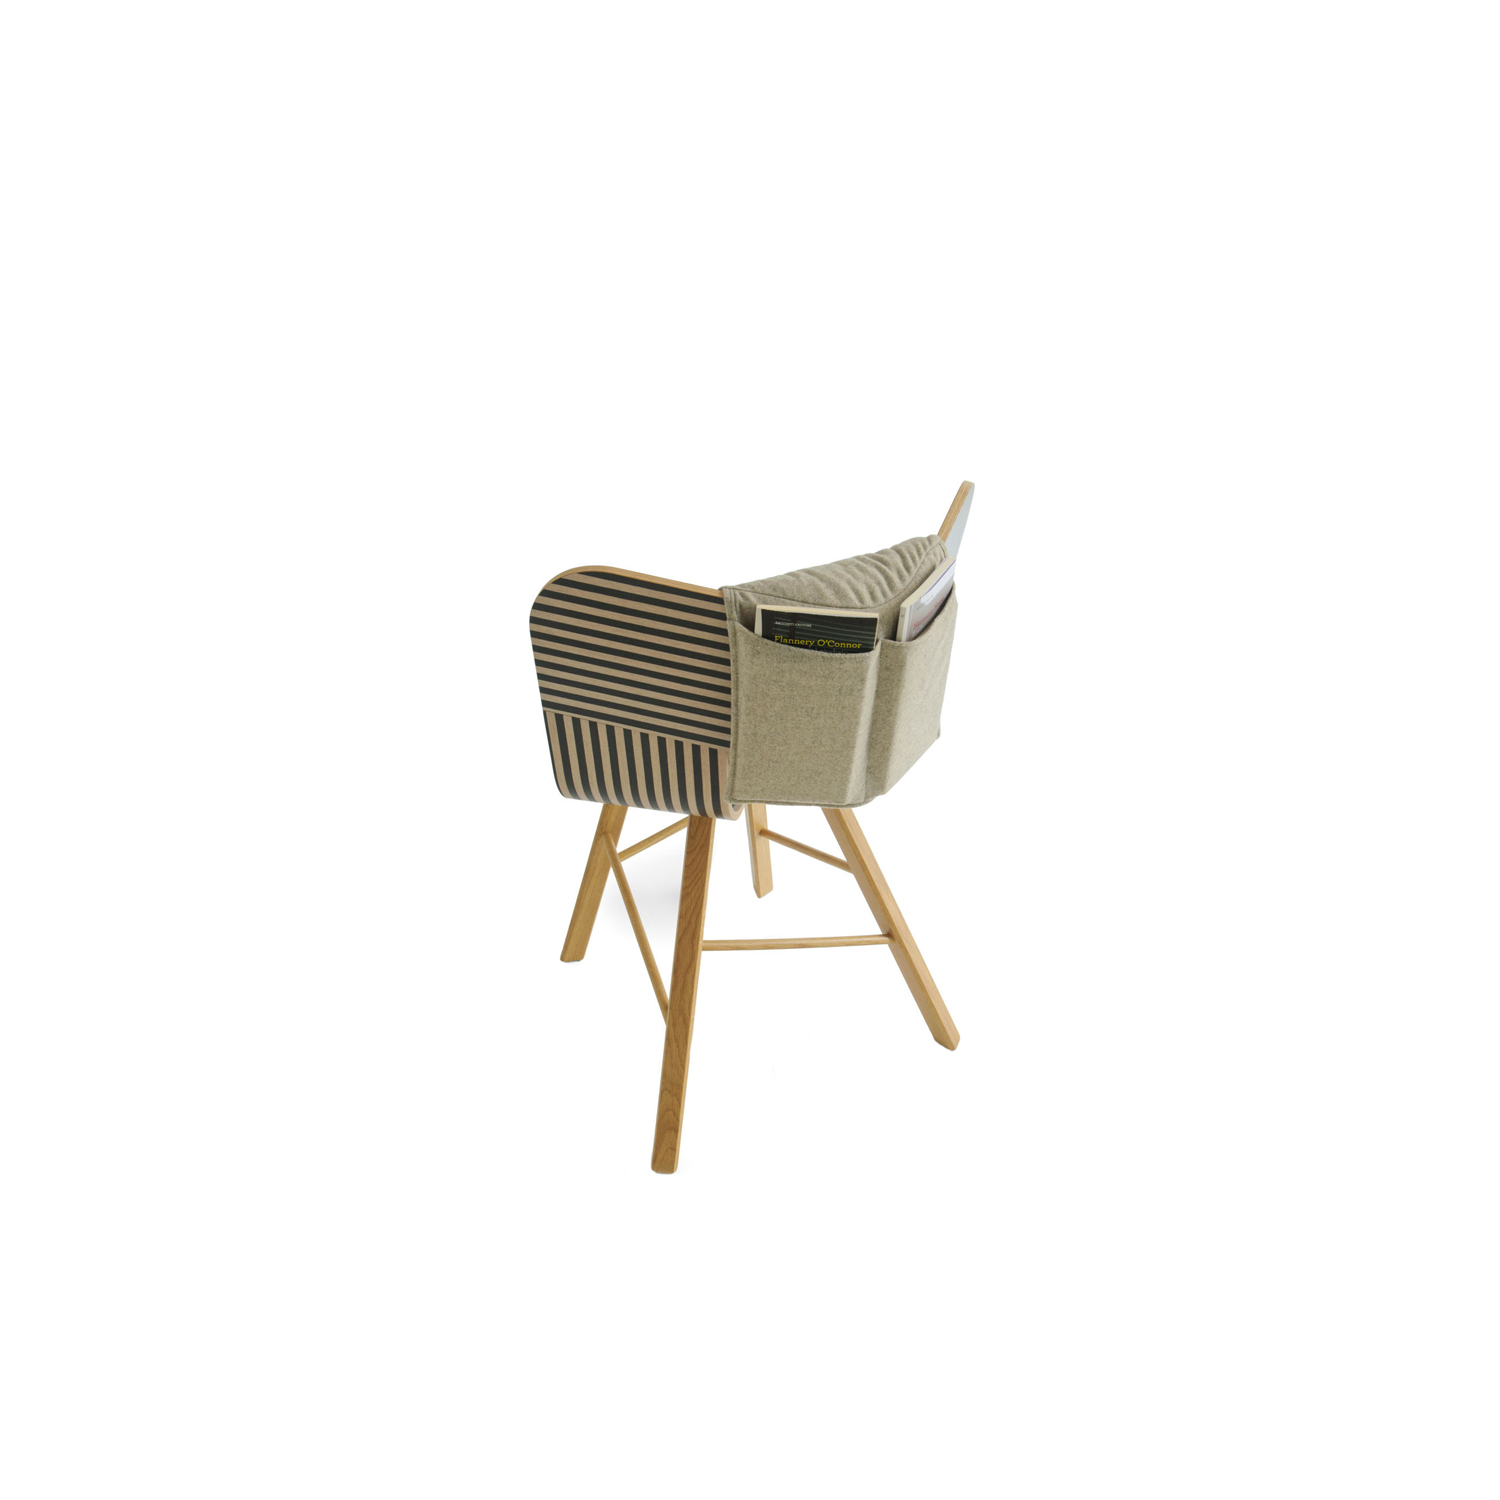 Tria 4 Chair with Cushion - Tria Cushion Specially designed and tailor made for Tria chairs, simply wrapped around Tria's back, it evokes the gesture of saddling a horse.